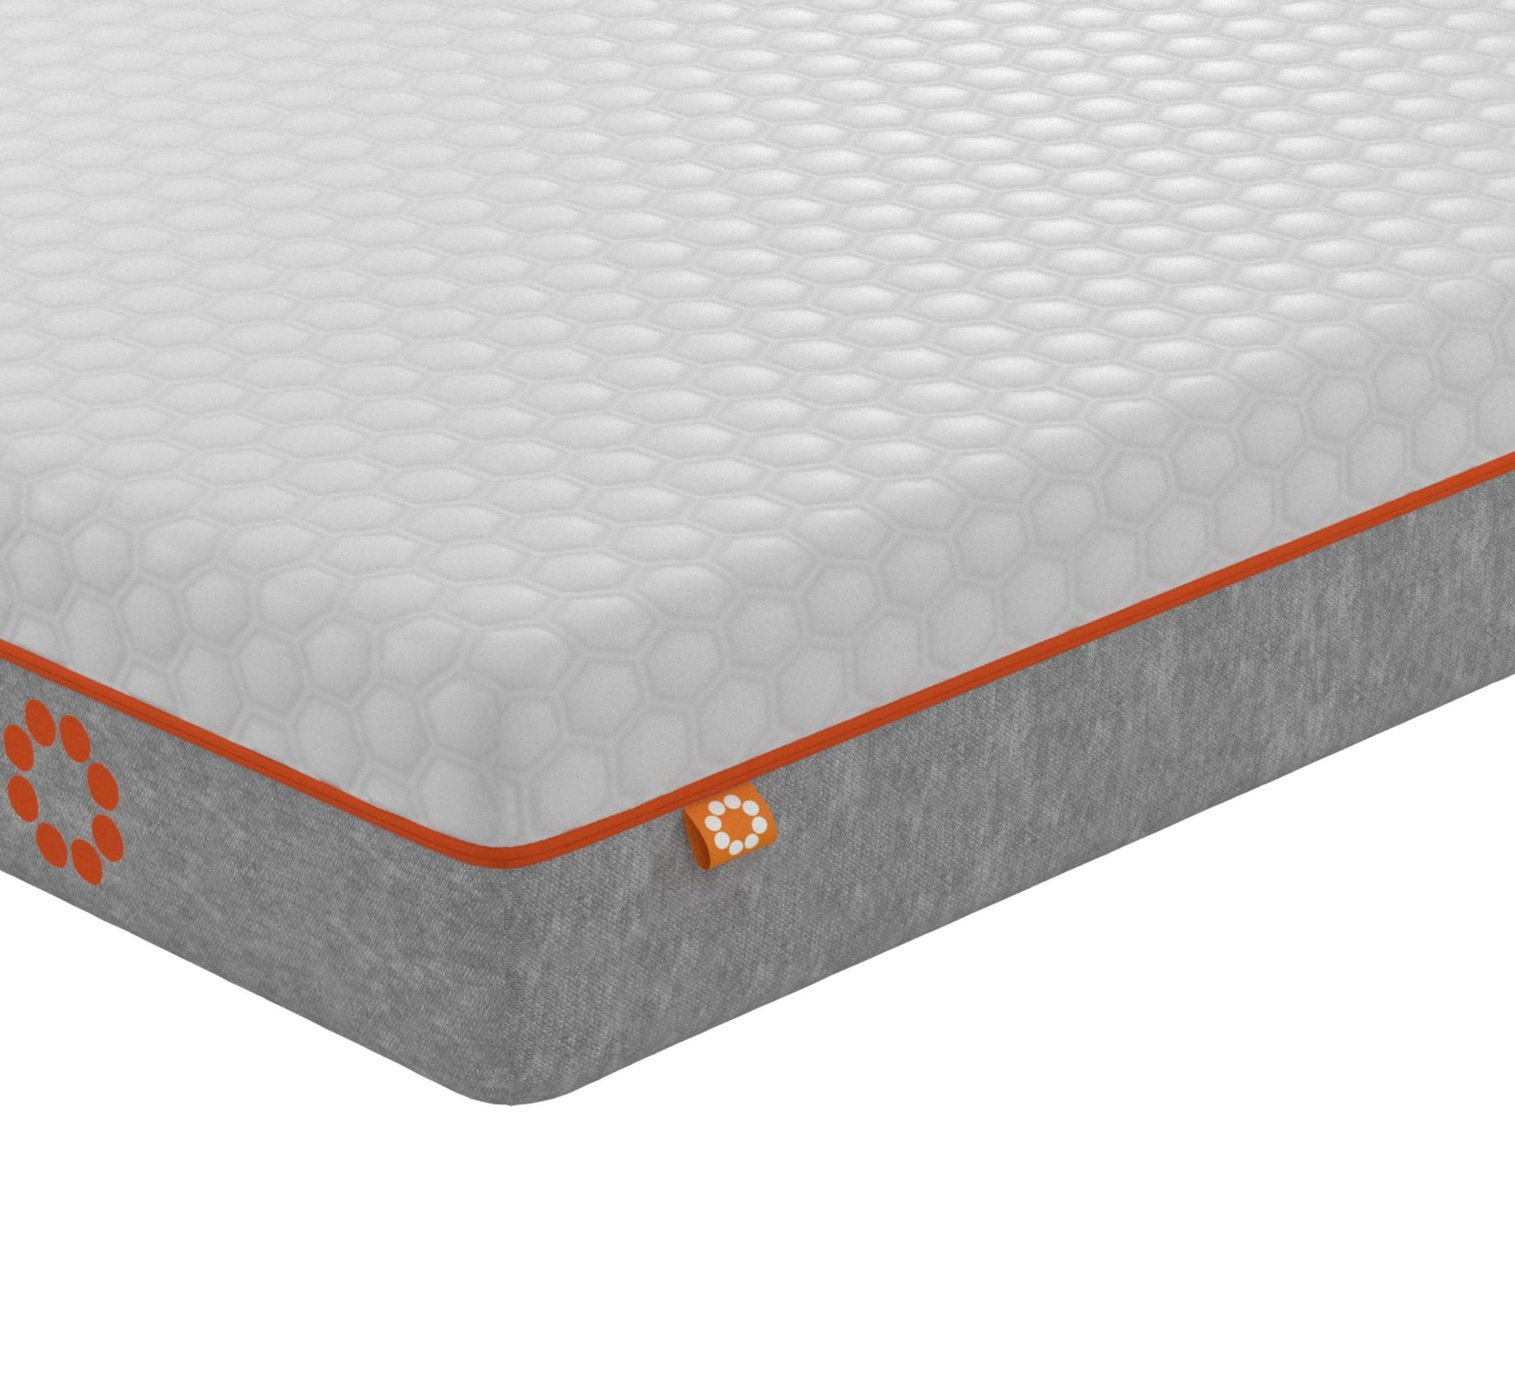 Dormeo Octasmart Hybrid Plus Superking Mattress